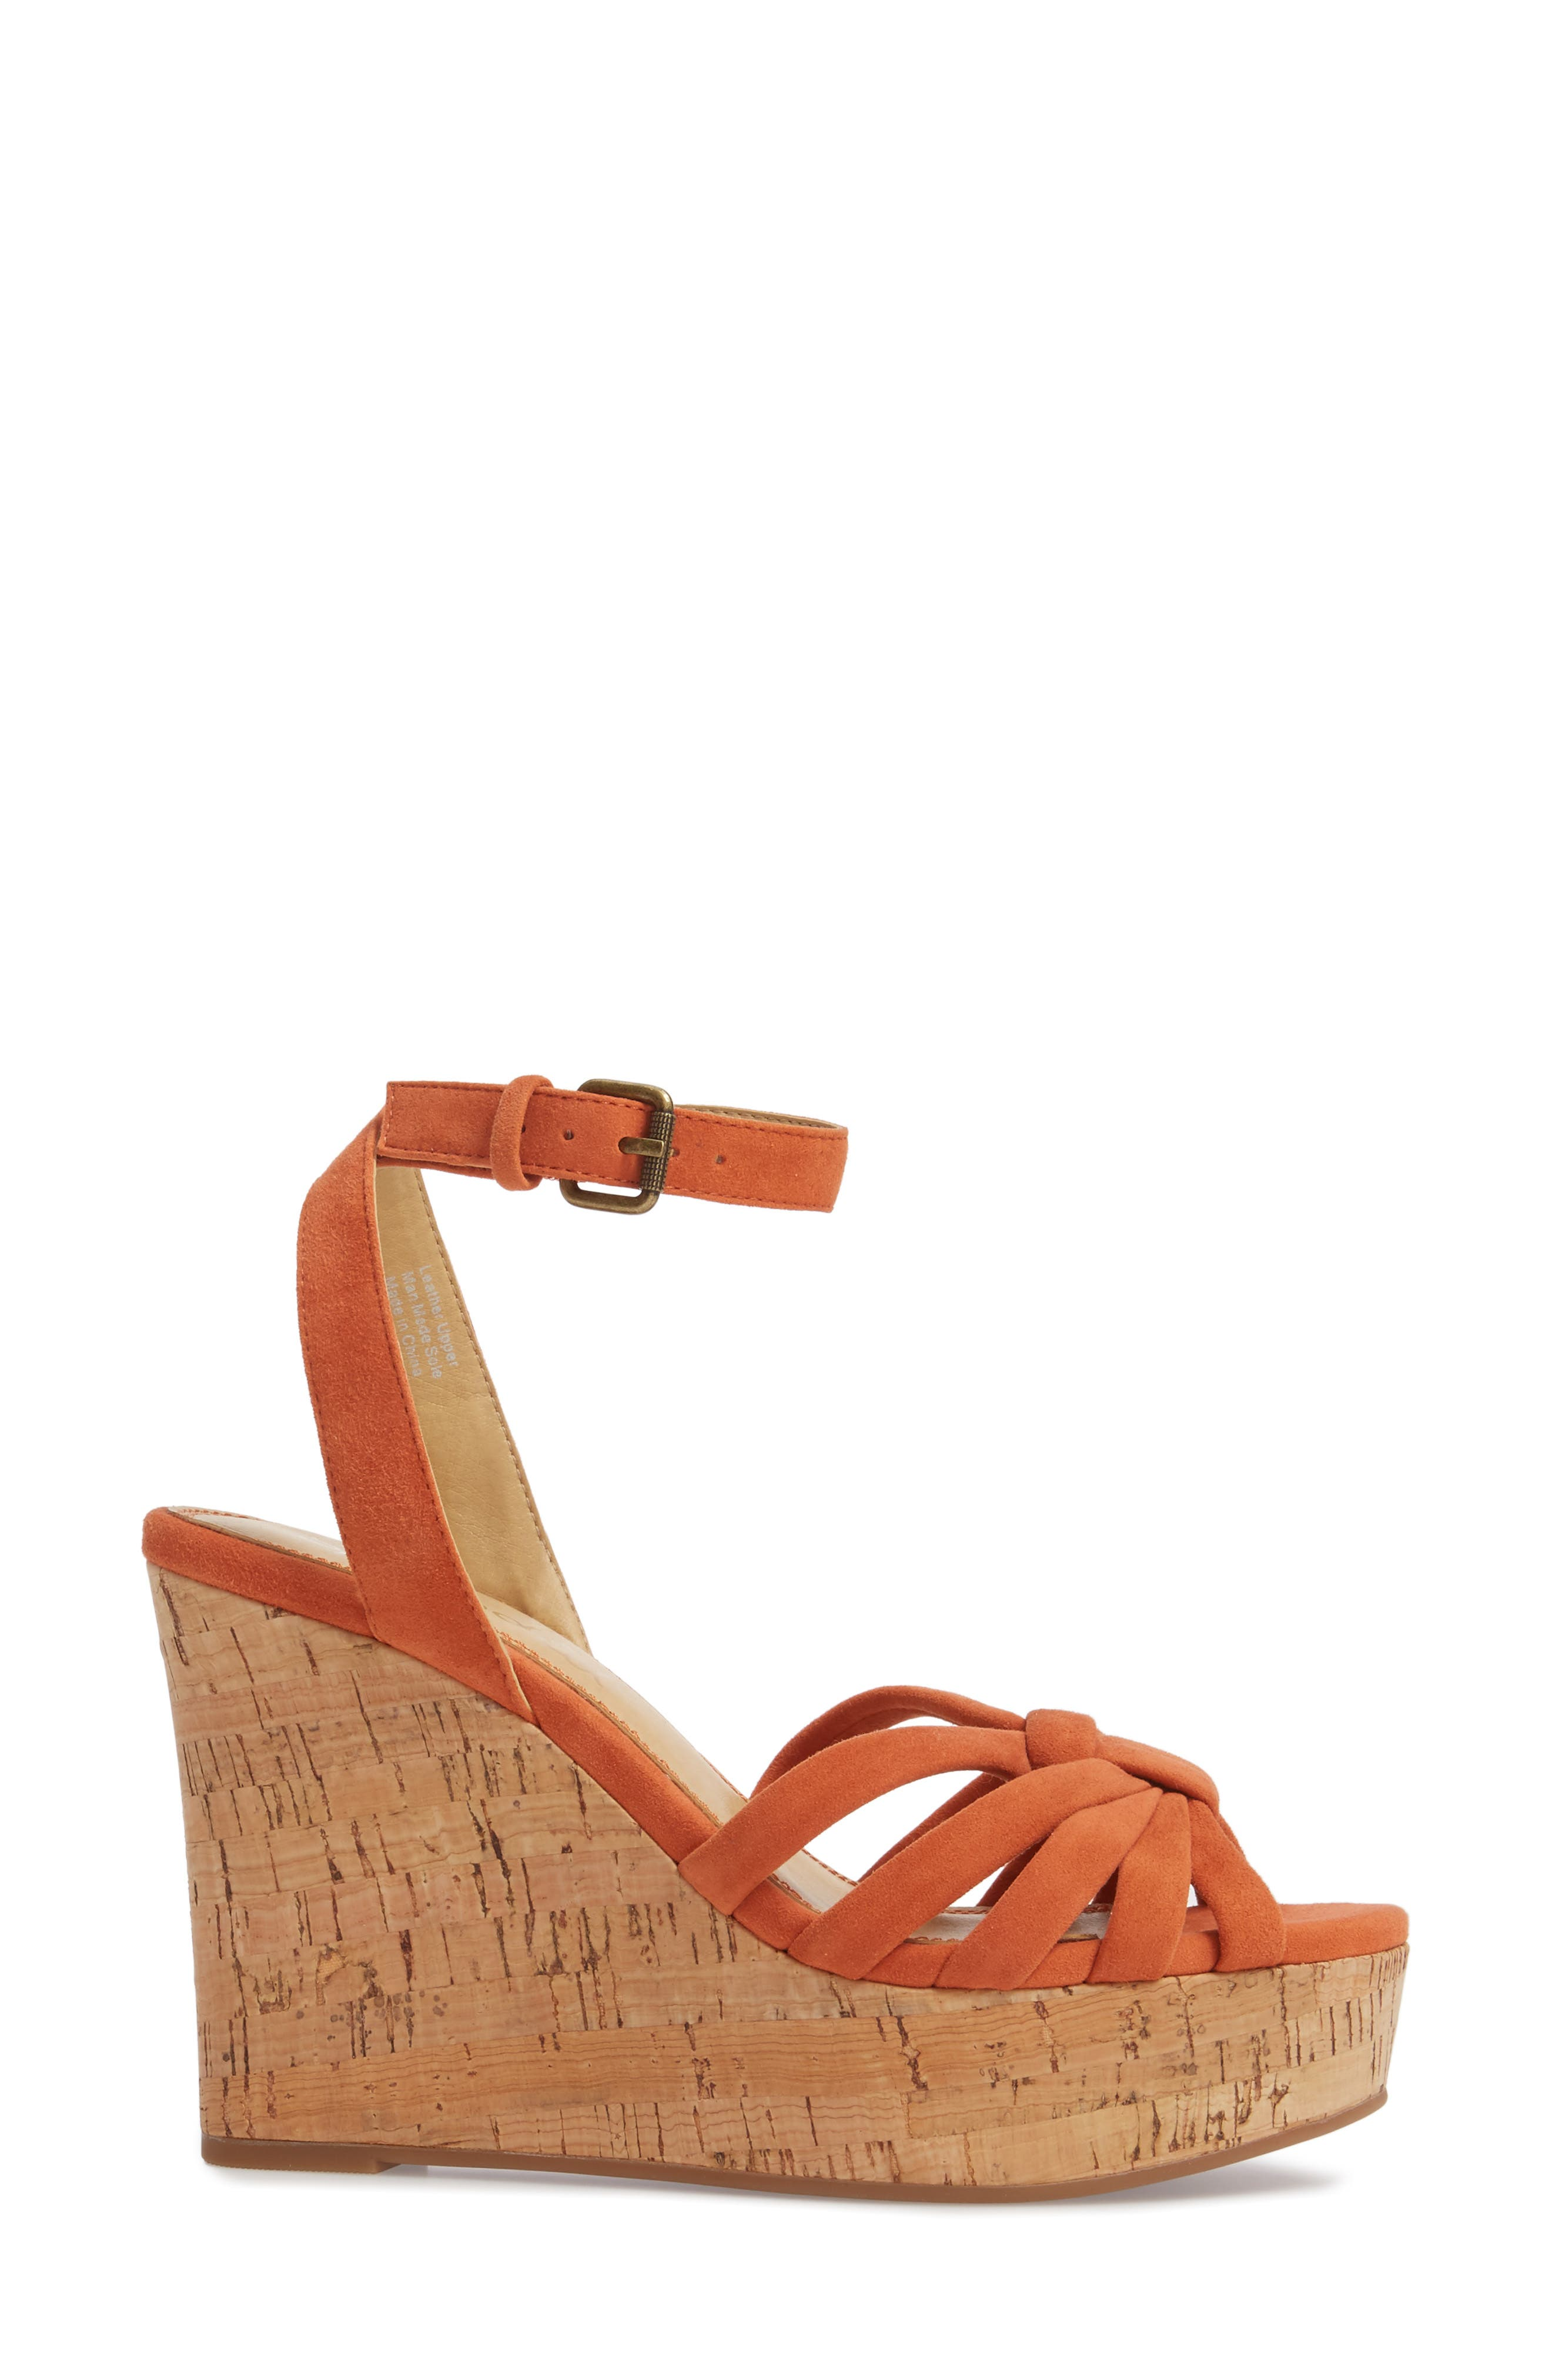 Fallon Wedge Sandal,                             Alternate thumbnail 3, color,                             Coral Suede